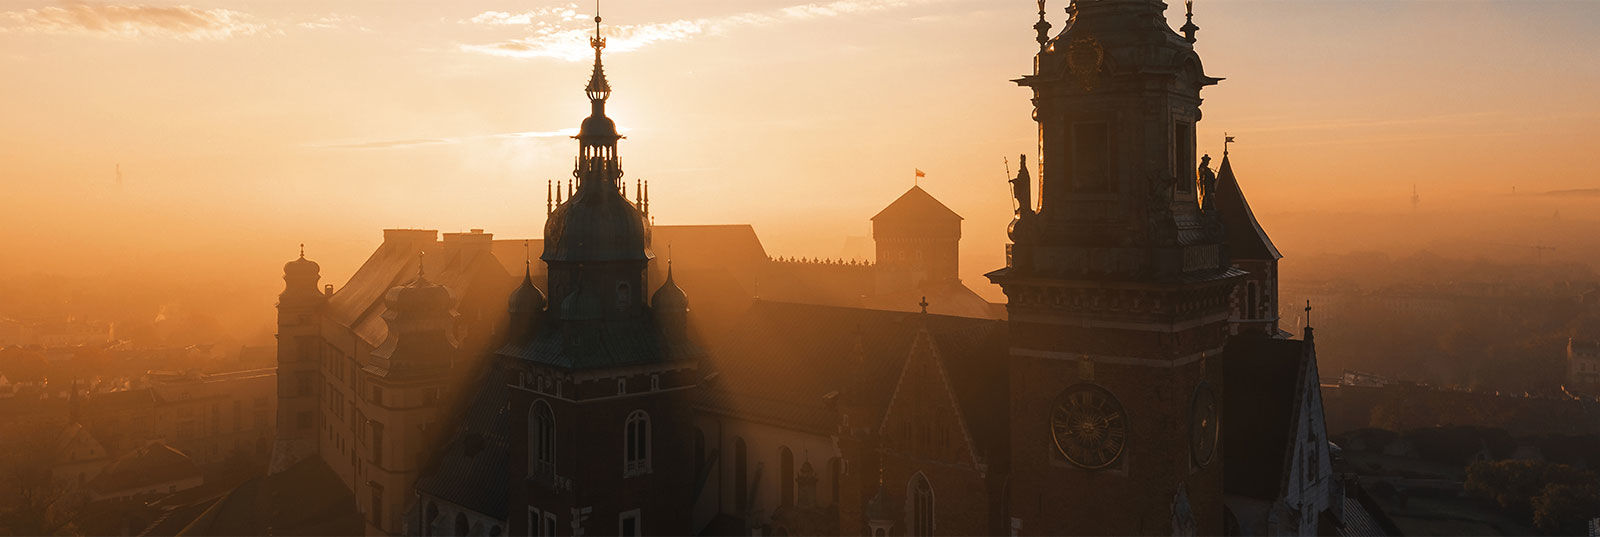 Guía turística de Cracovie